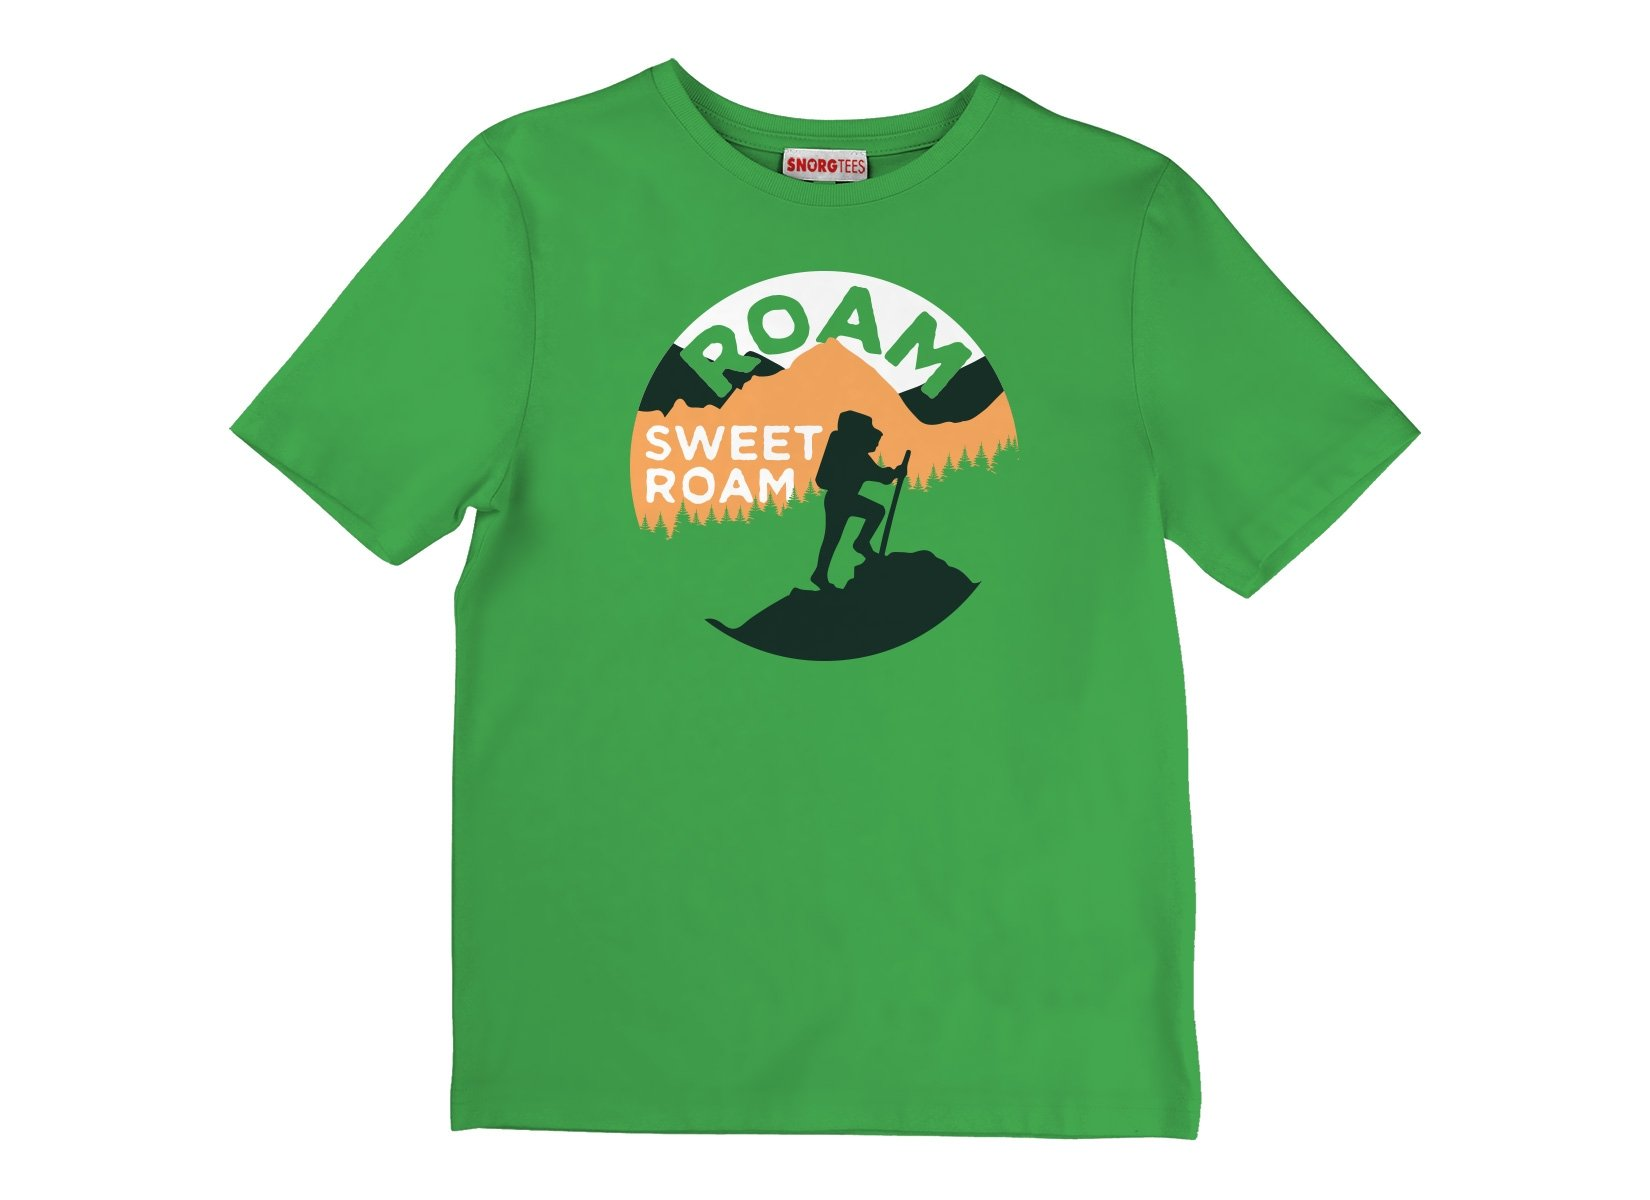 Roam Sweet Roam on Kids T-Shirt